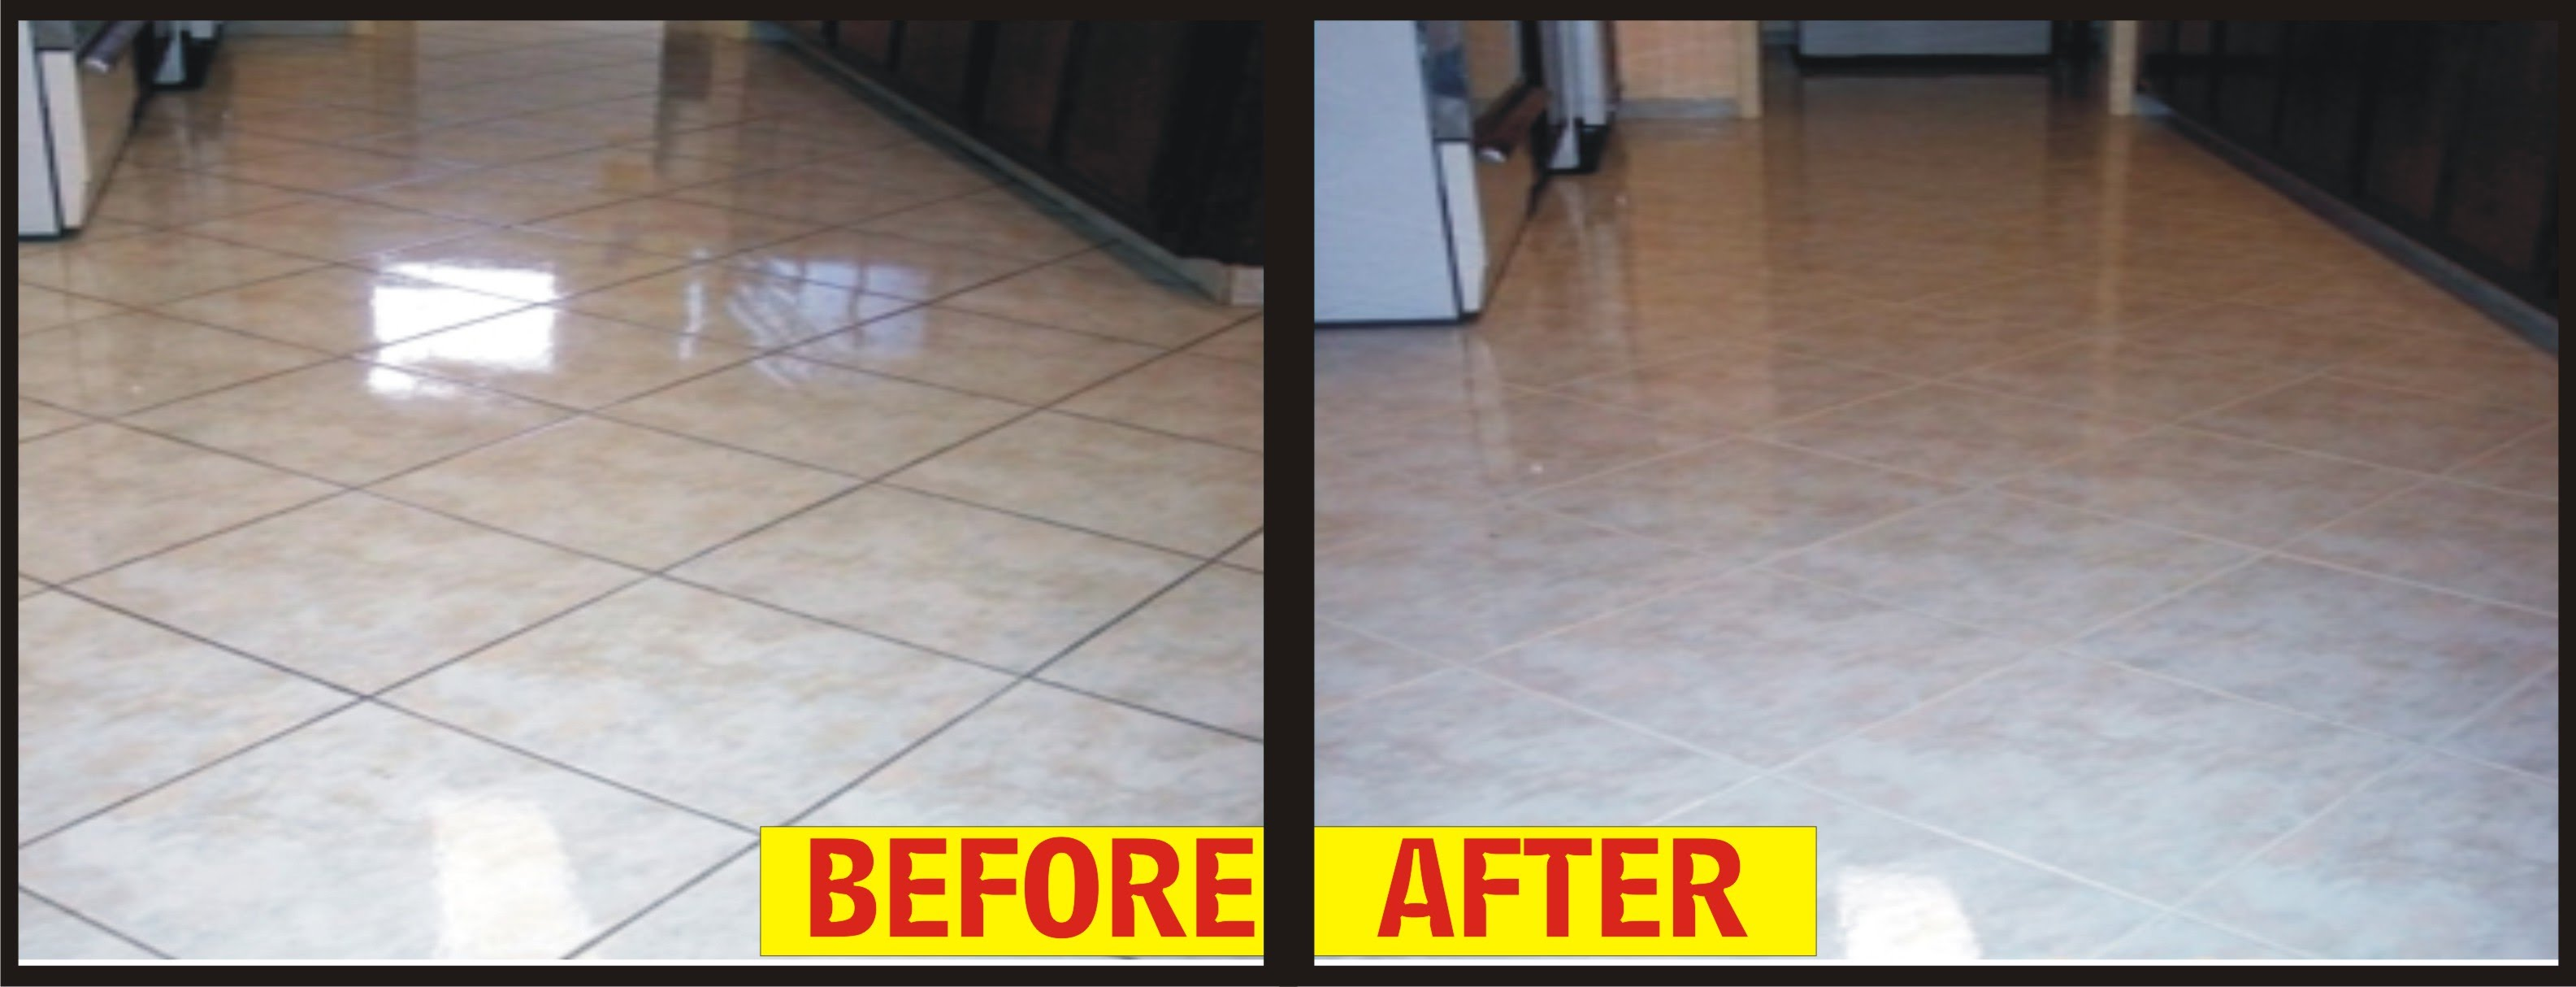 Tile grout cleaning tile grout cleaning carpet cleaner how much to clean tile and grout floor although many of you have attempted to clean the tile floor and remove the black unhygienic greasedirt off the dailygadgetfo Choice Image